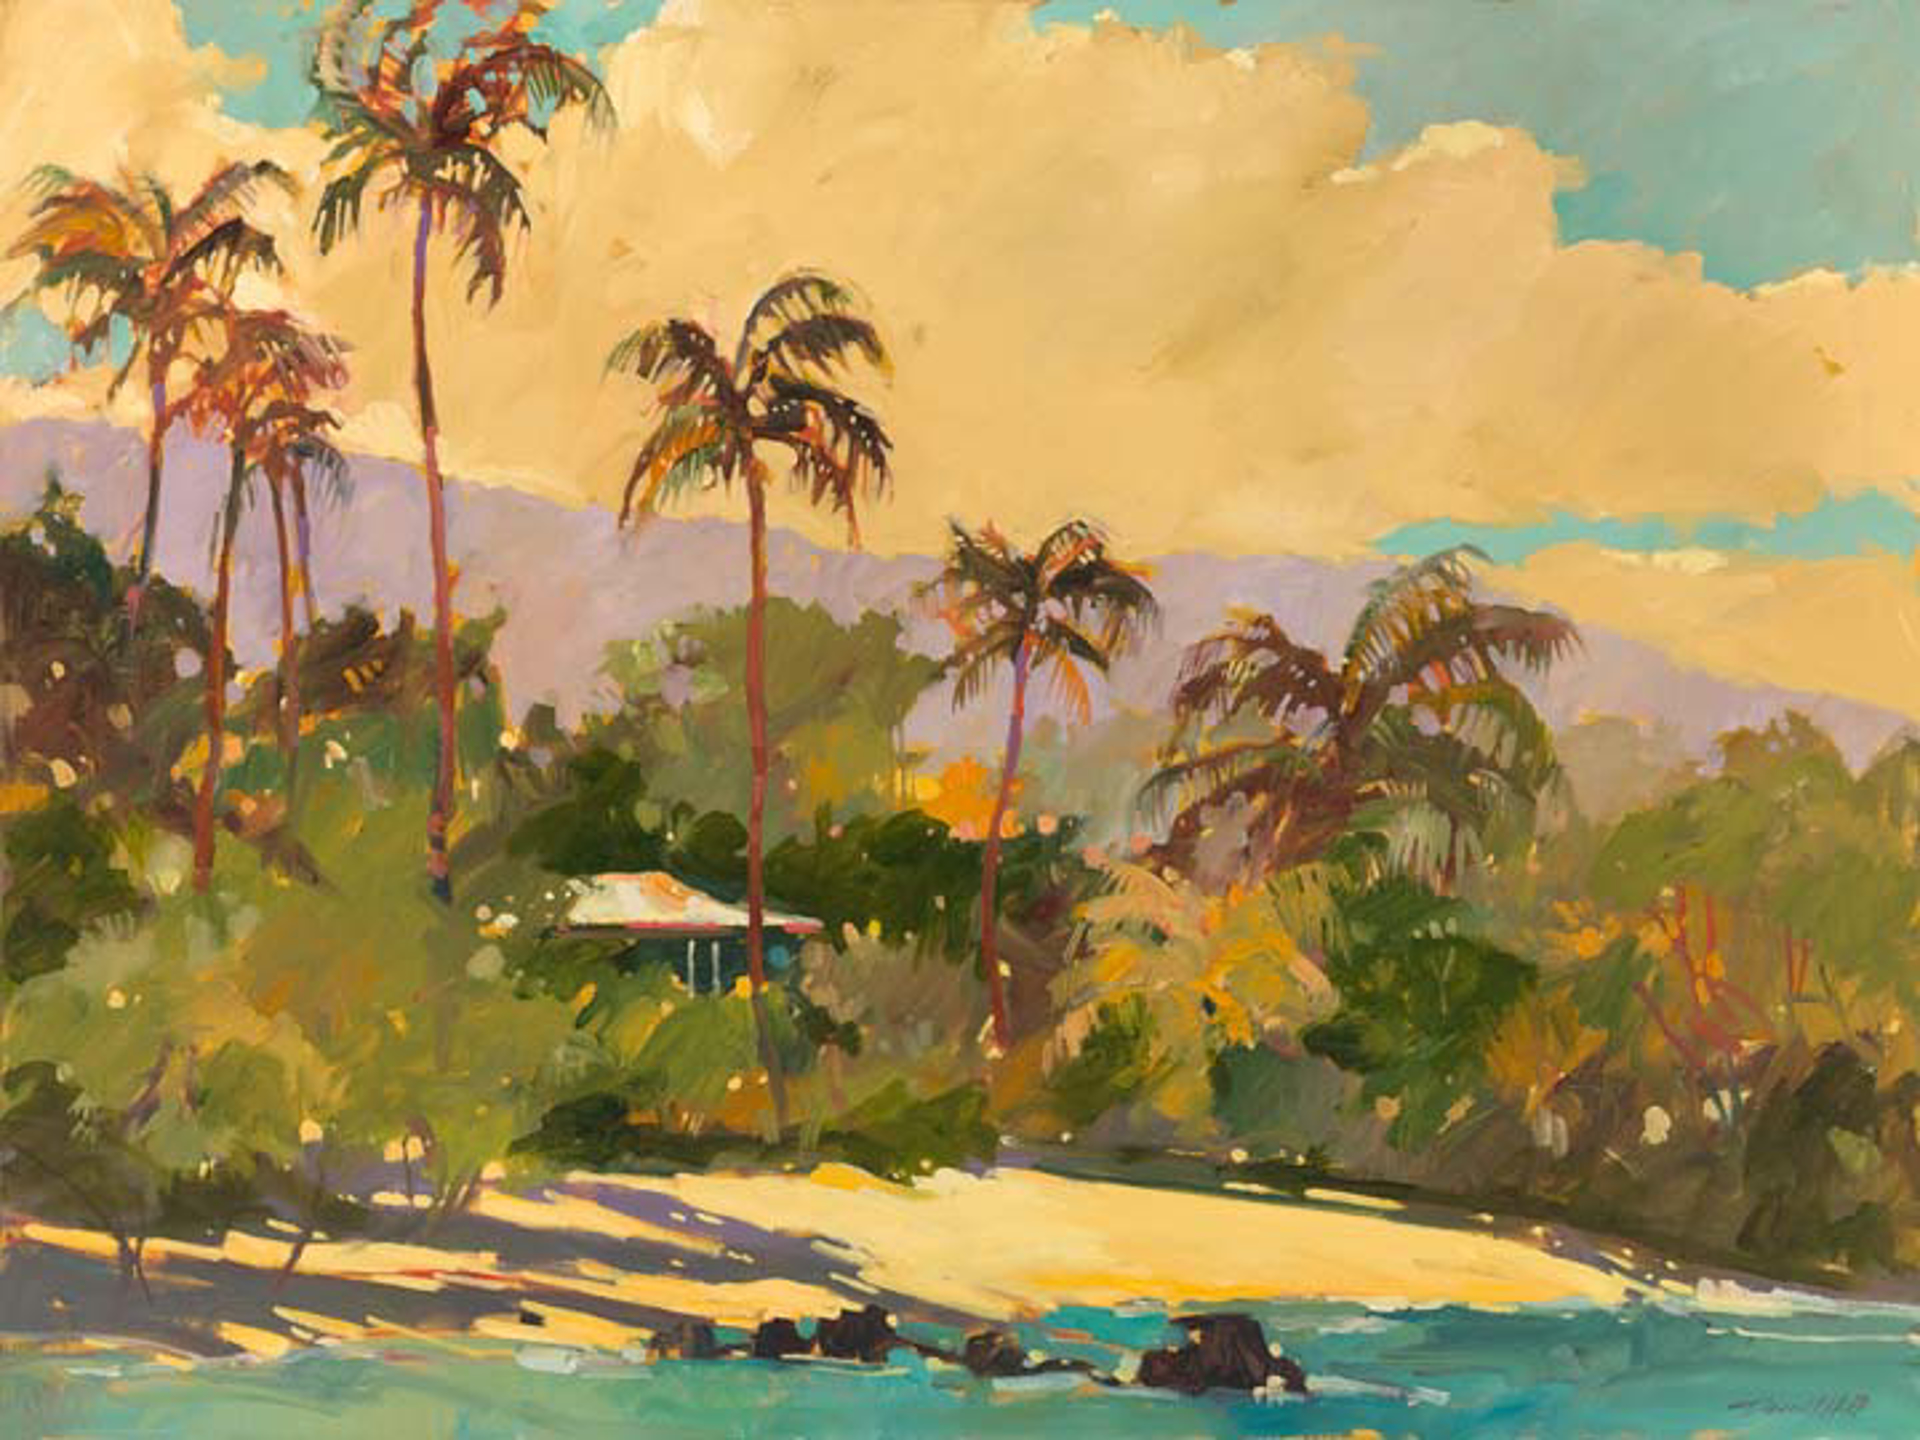 Island Tranquility APE by Darrell Hill